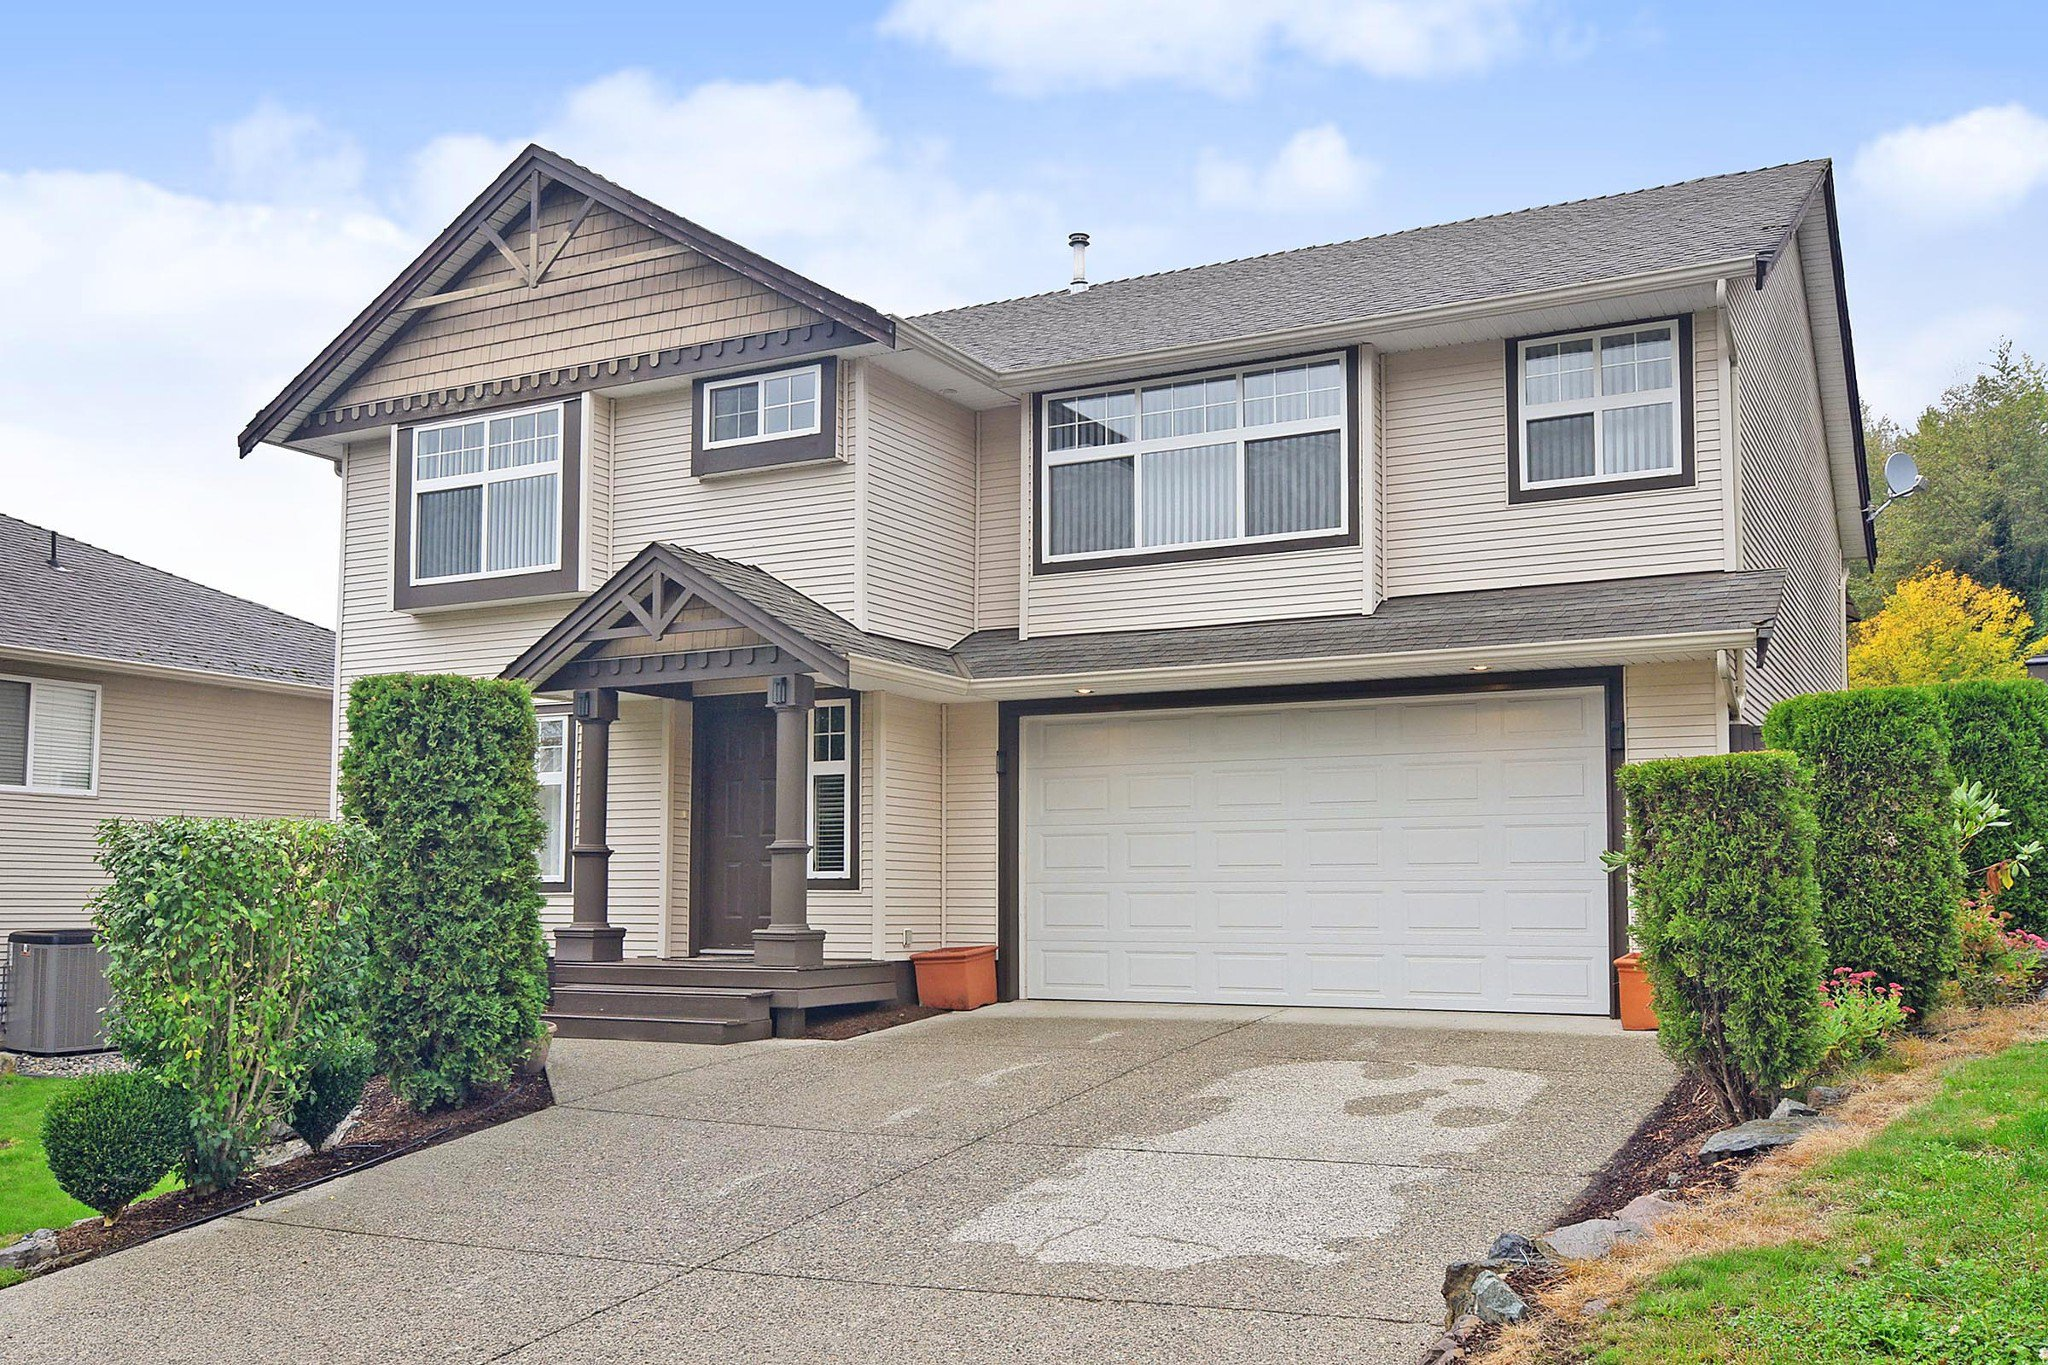 """Main Photo: 35579 TWEEDSMUIR Drive in Abbotsford: Abbotsford East House for sale in """"McKinley Heights"""" : MLS®# R2407472"""